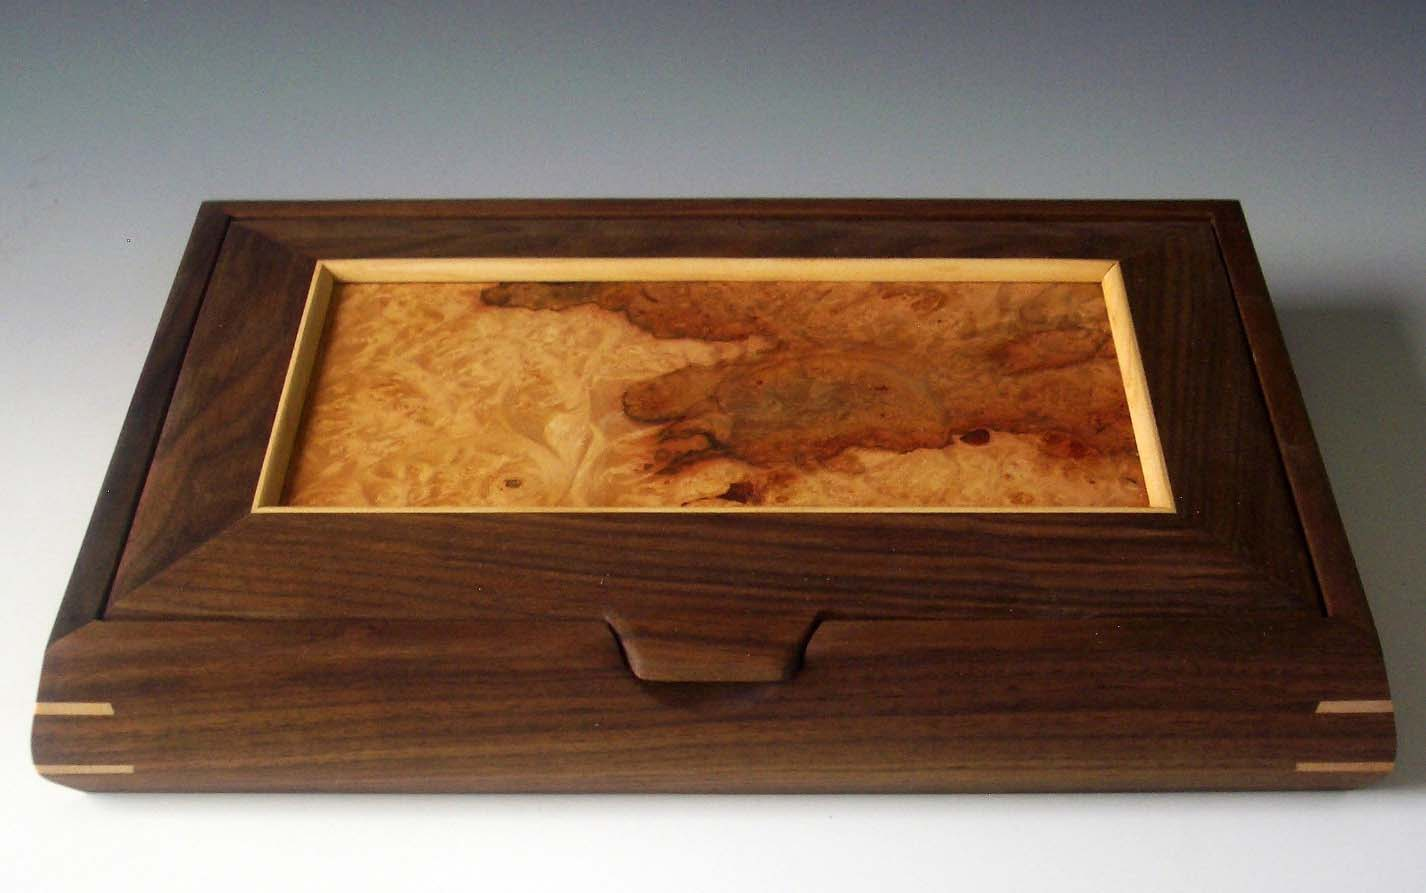 Handcrafted wood jewelry boxes - Handcrafted Wood Jewelry Boxes 9